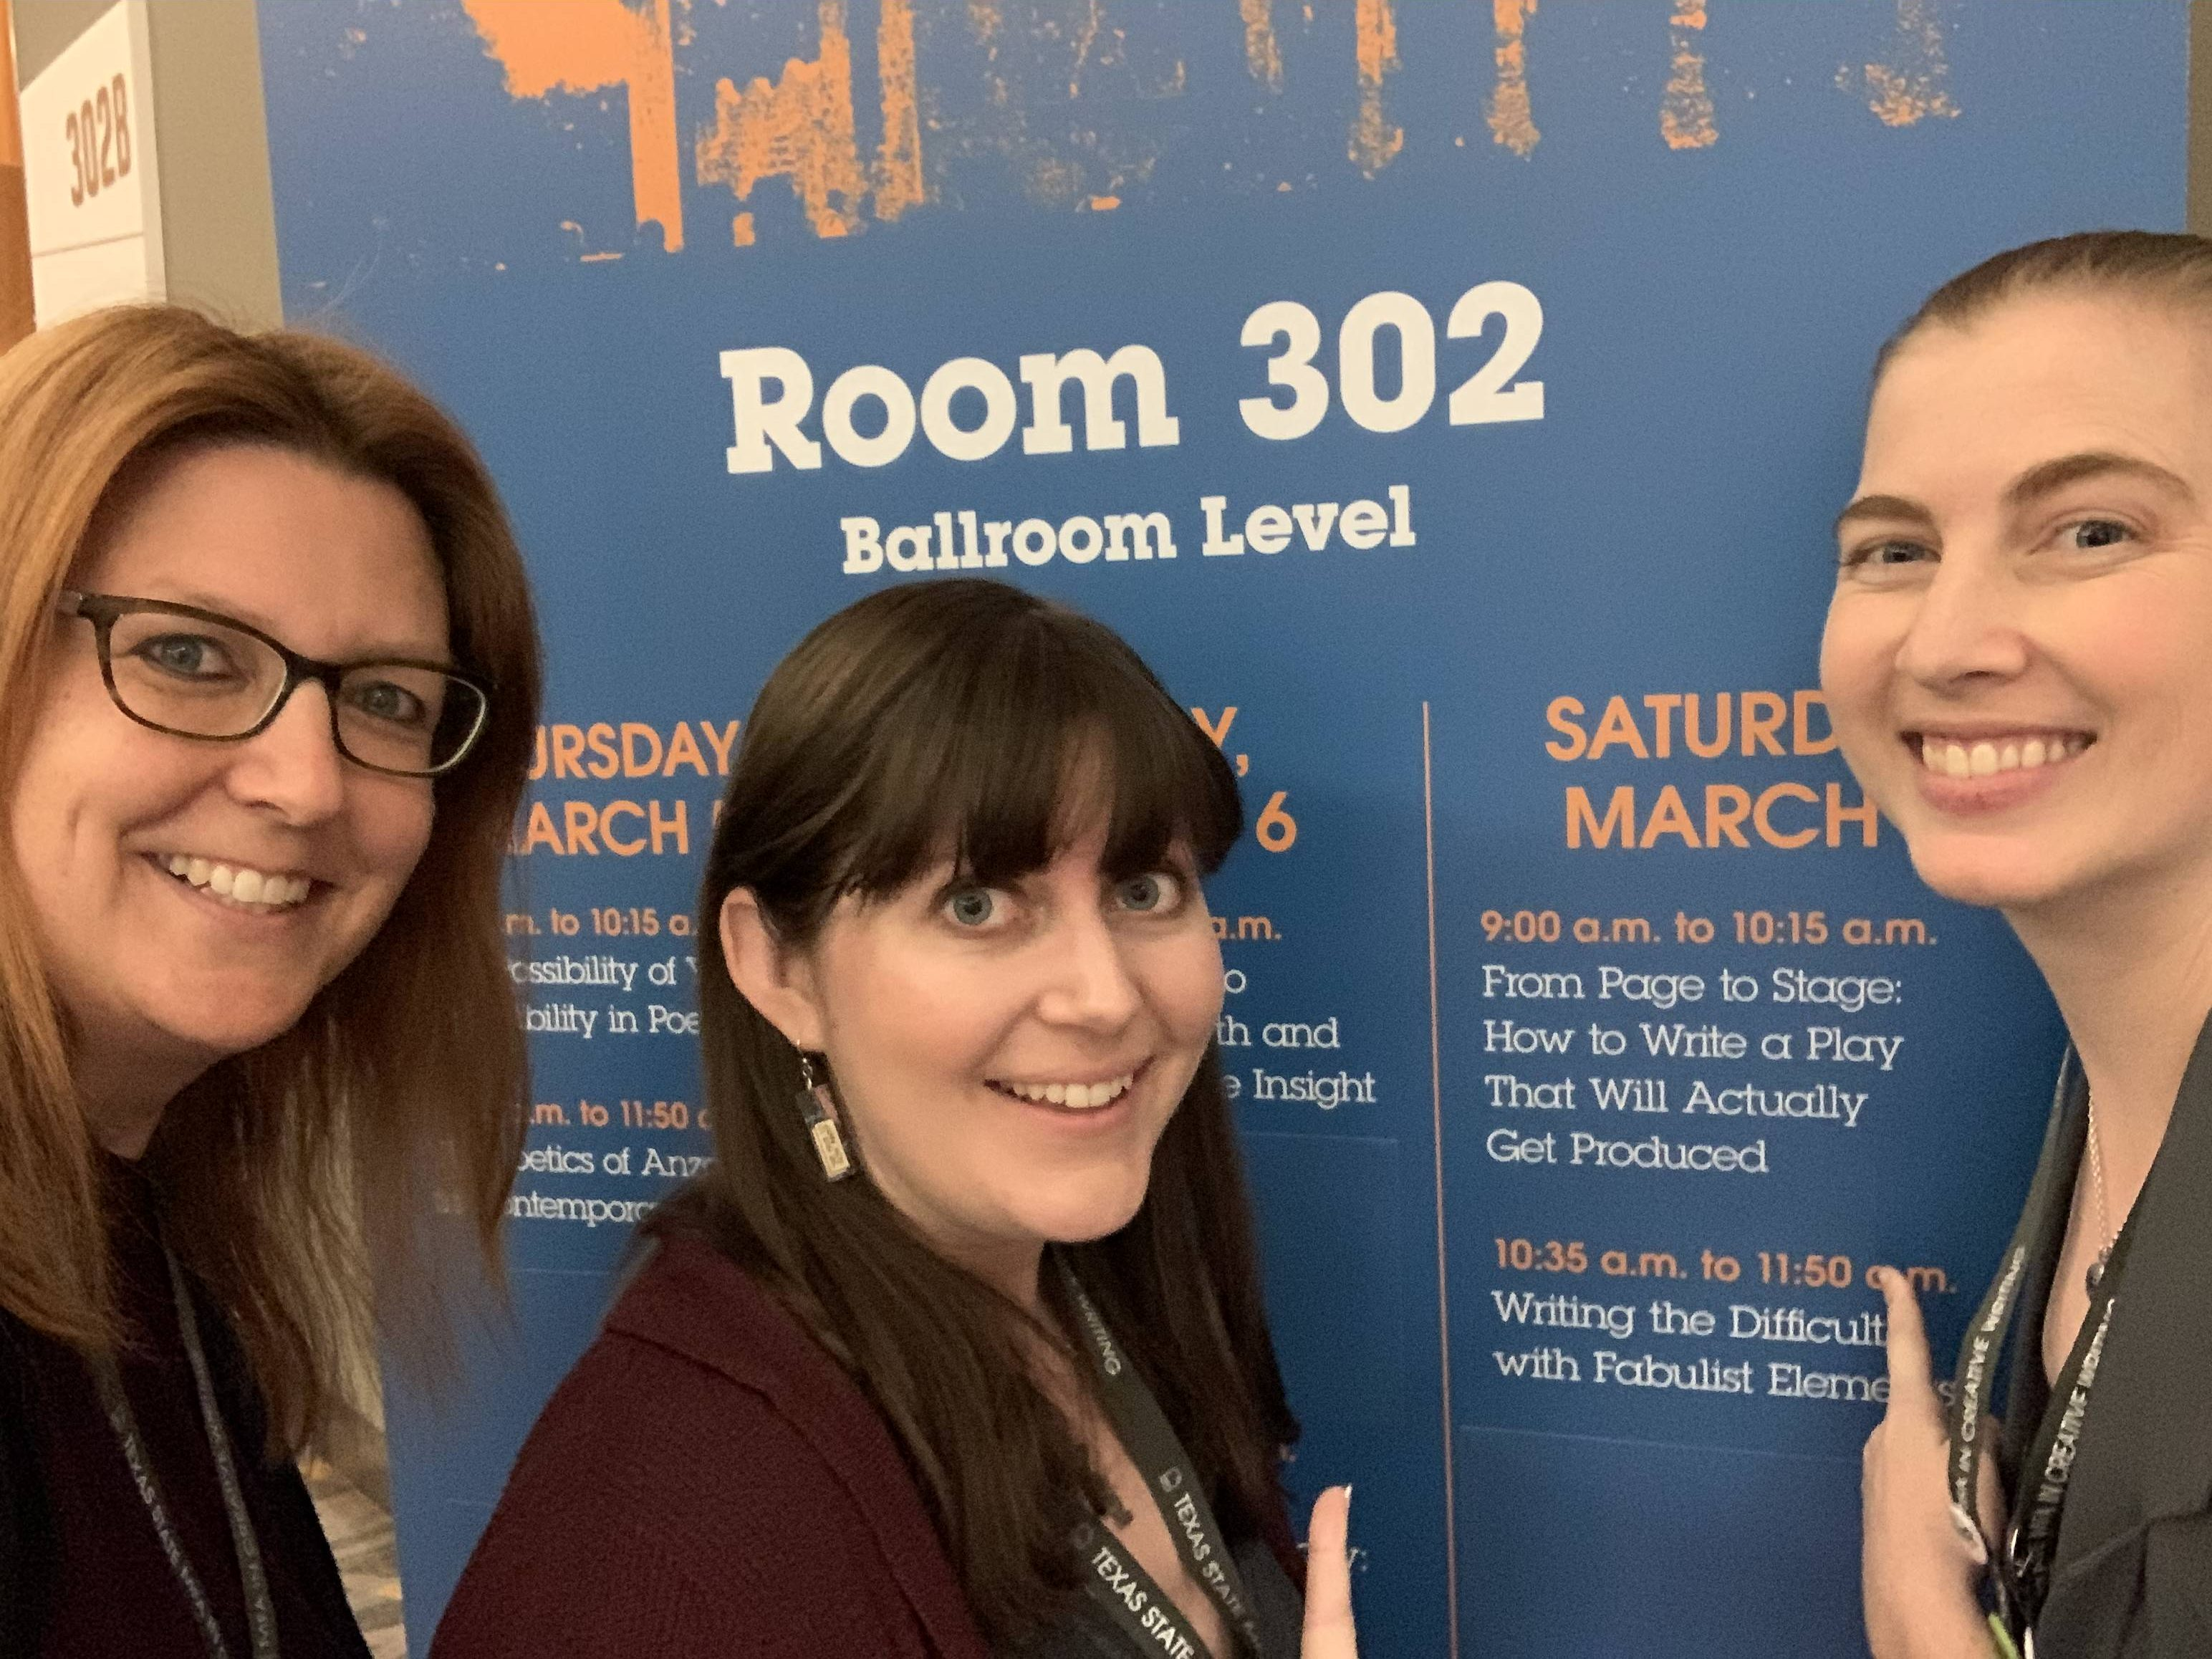 Annlee, Jessica, and Lauren outside of our panel room.